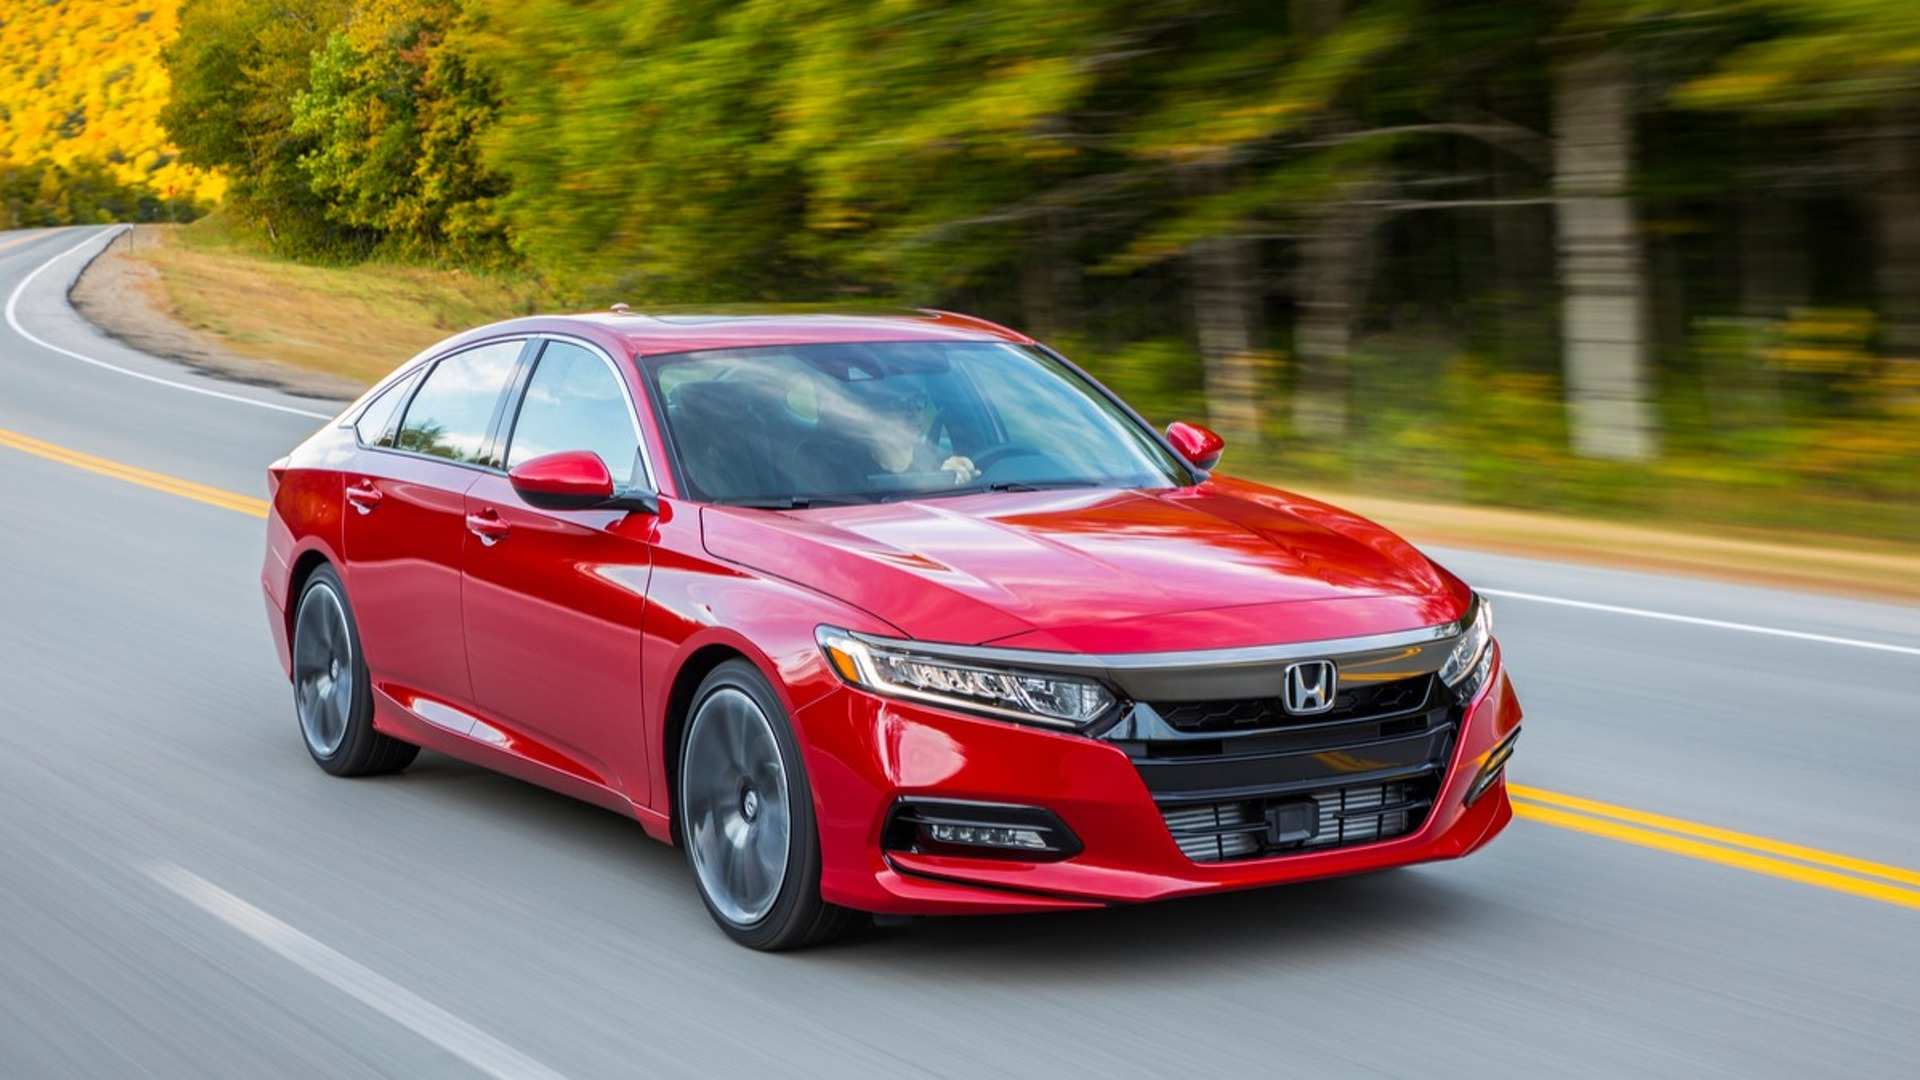 99 Great Honda Accord 2020 Changes Price with Honda Accord 2020 Changes